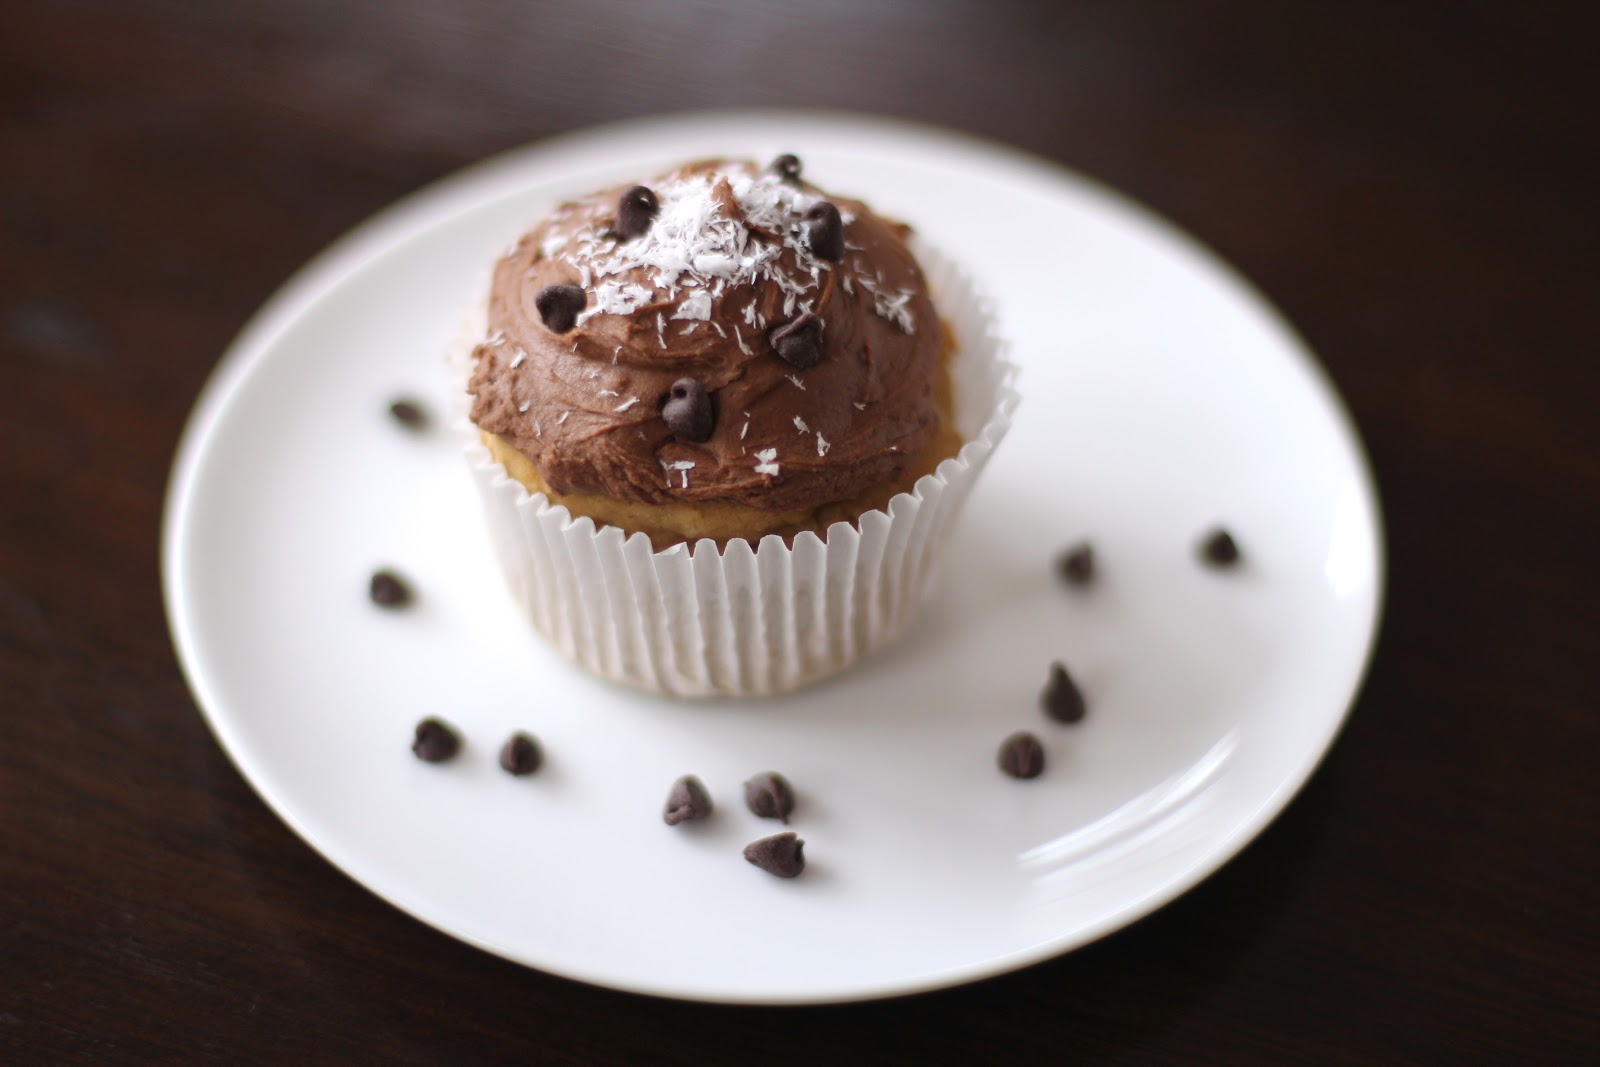 Healthy Coconut Quinoa Cupcakes with Chocolate Frosting (sugar free, low fat, high protein, gluten free, vegan)